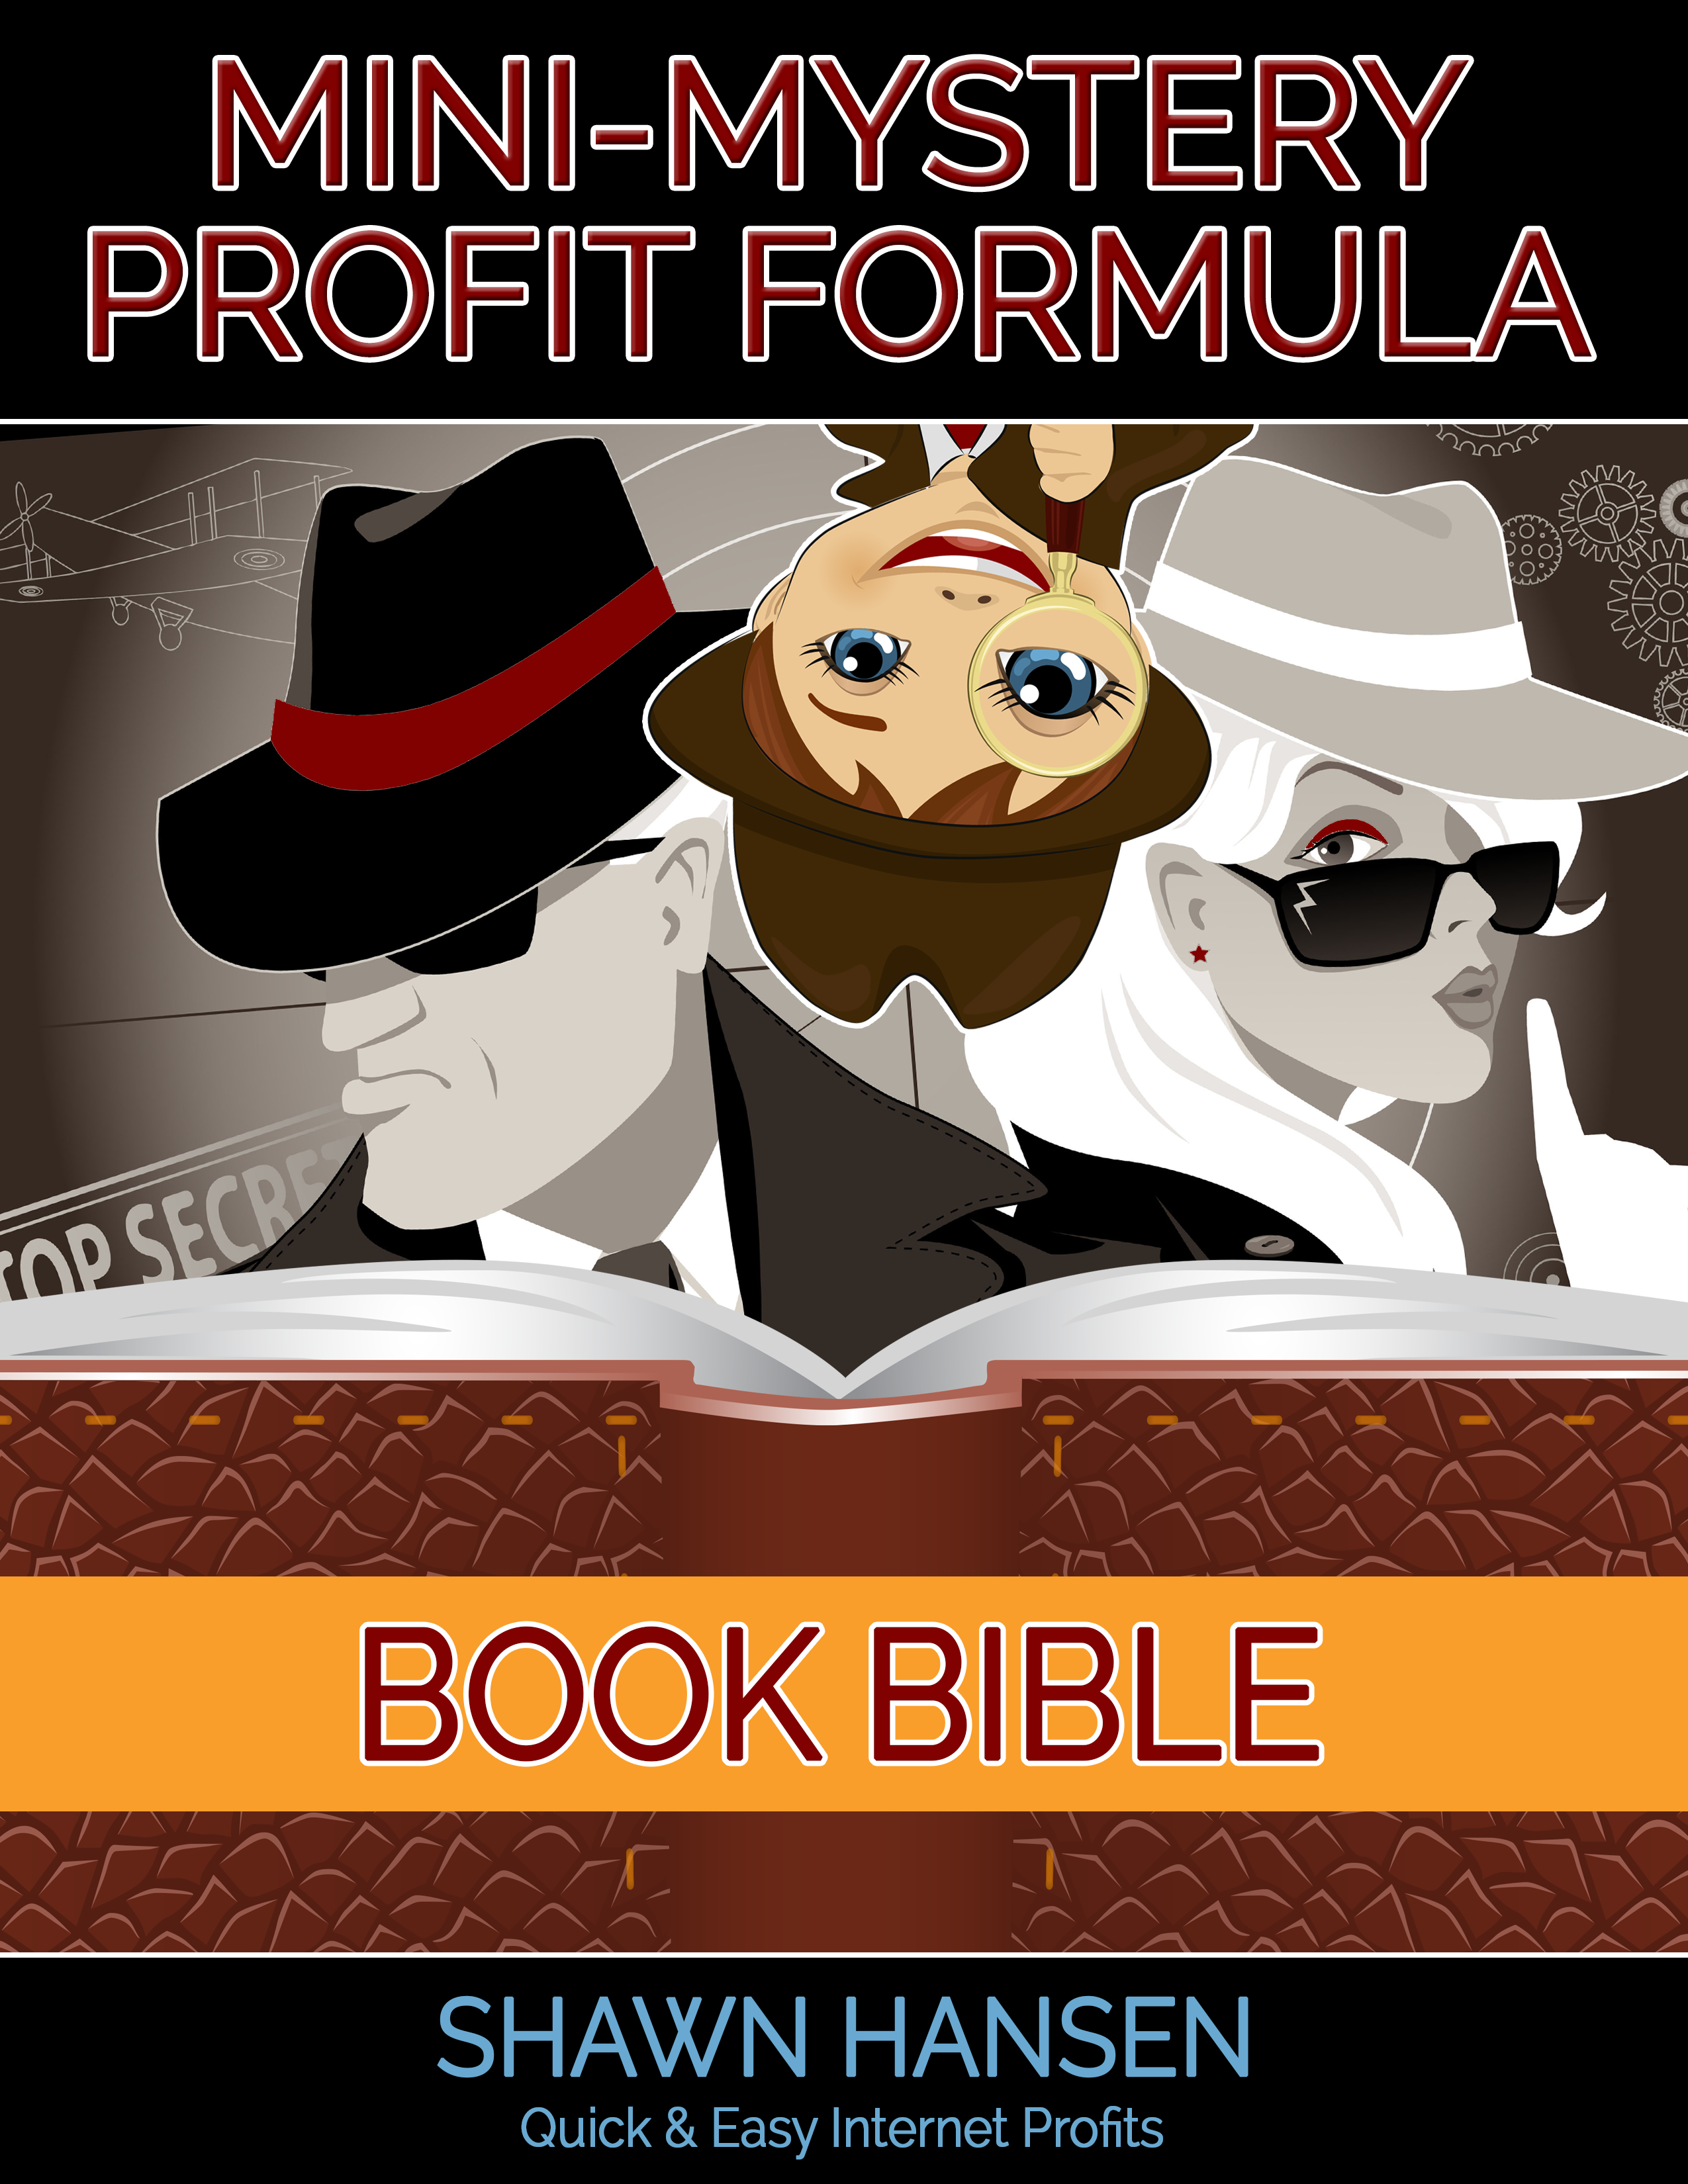 Mini-Mystery Profit Formula Writers' Toolkit Book Bible by Shawn Hansen